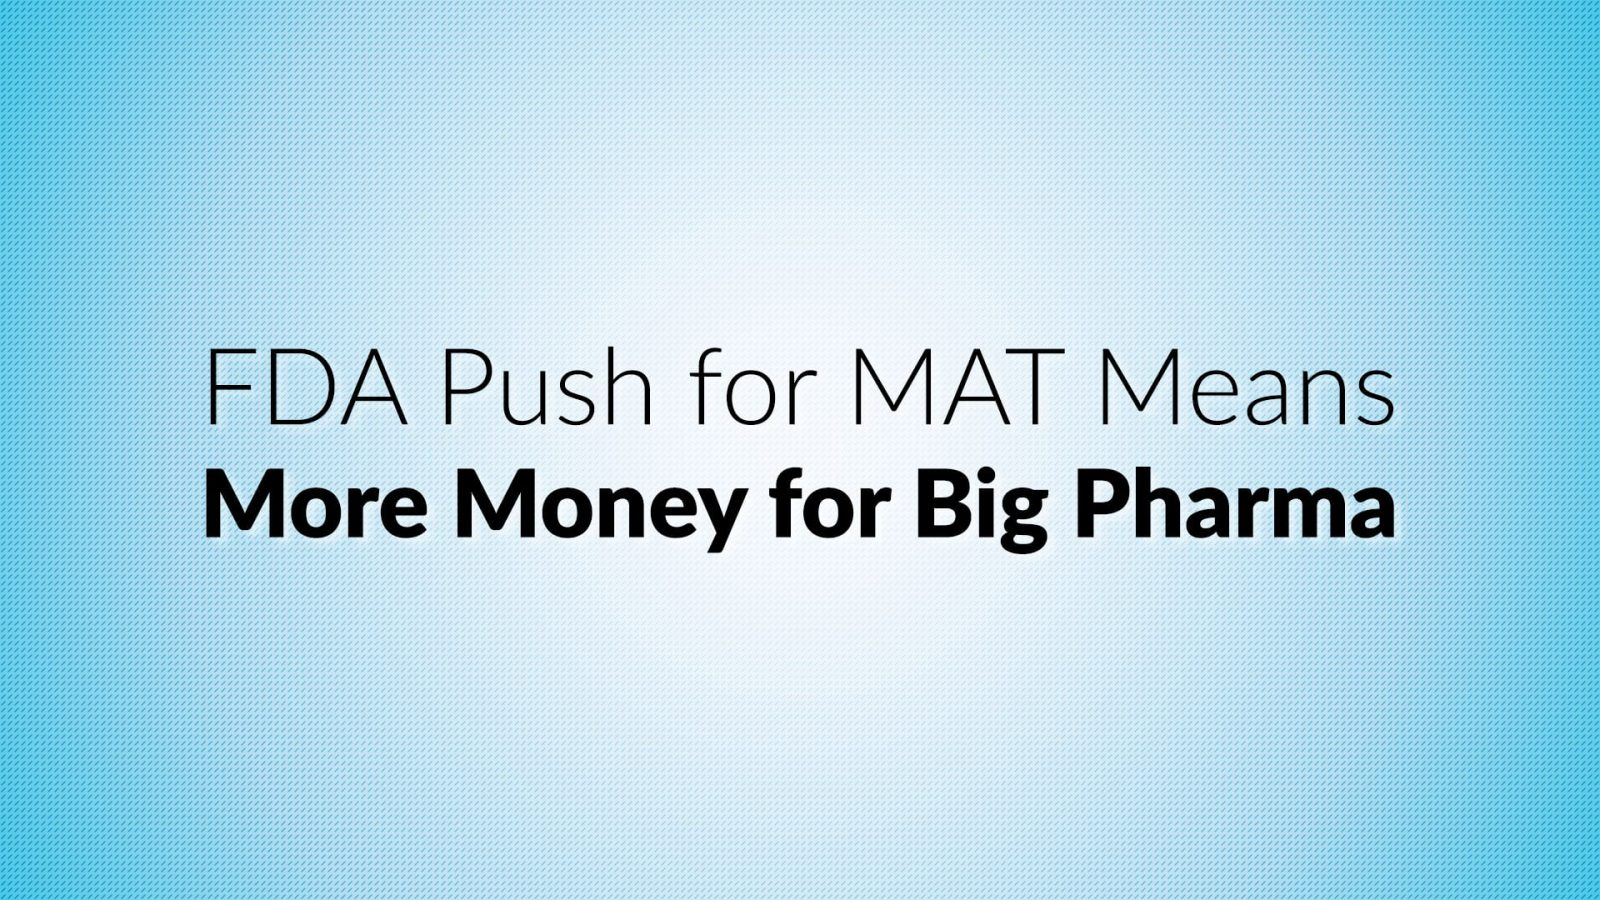 FDA Push for MAT Means More Money for Big Pharma